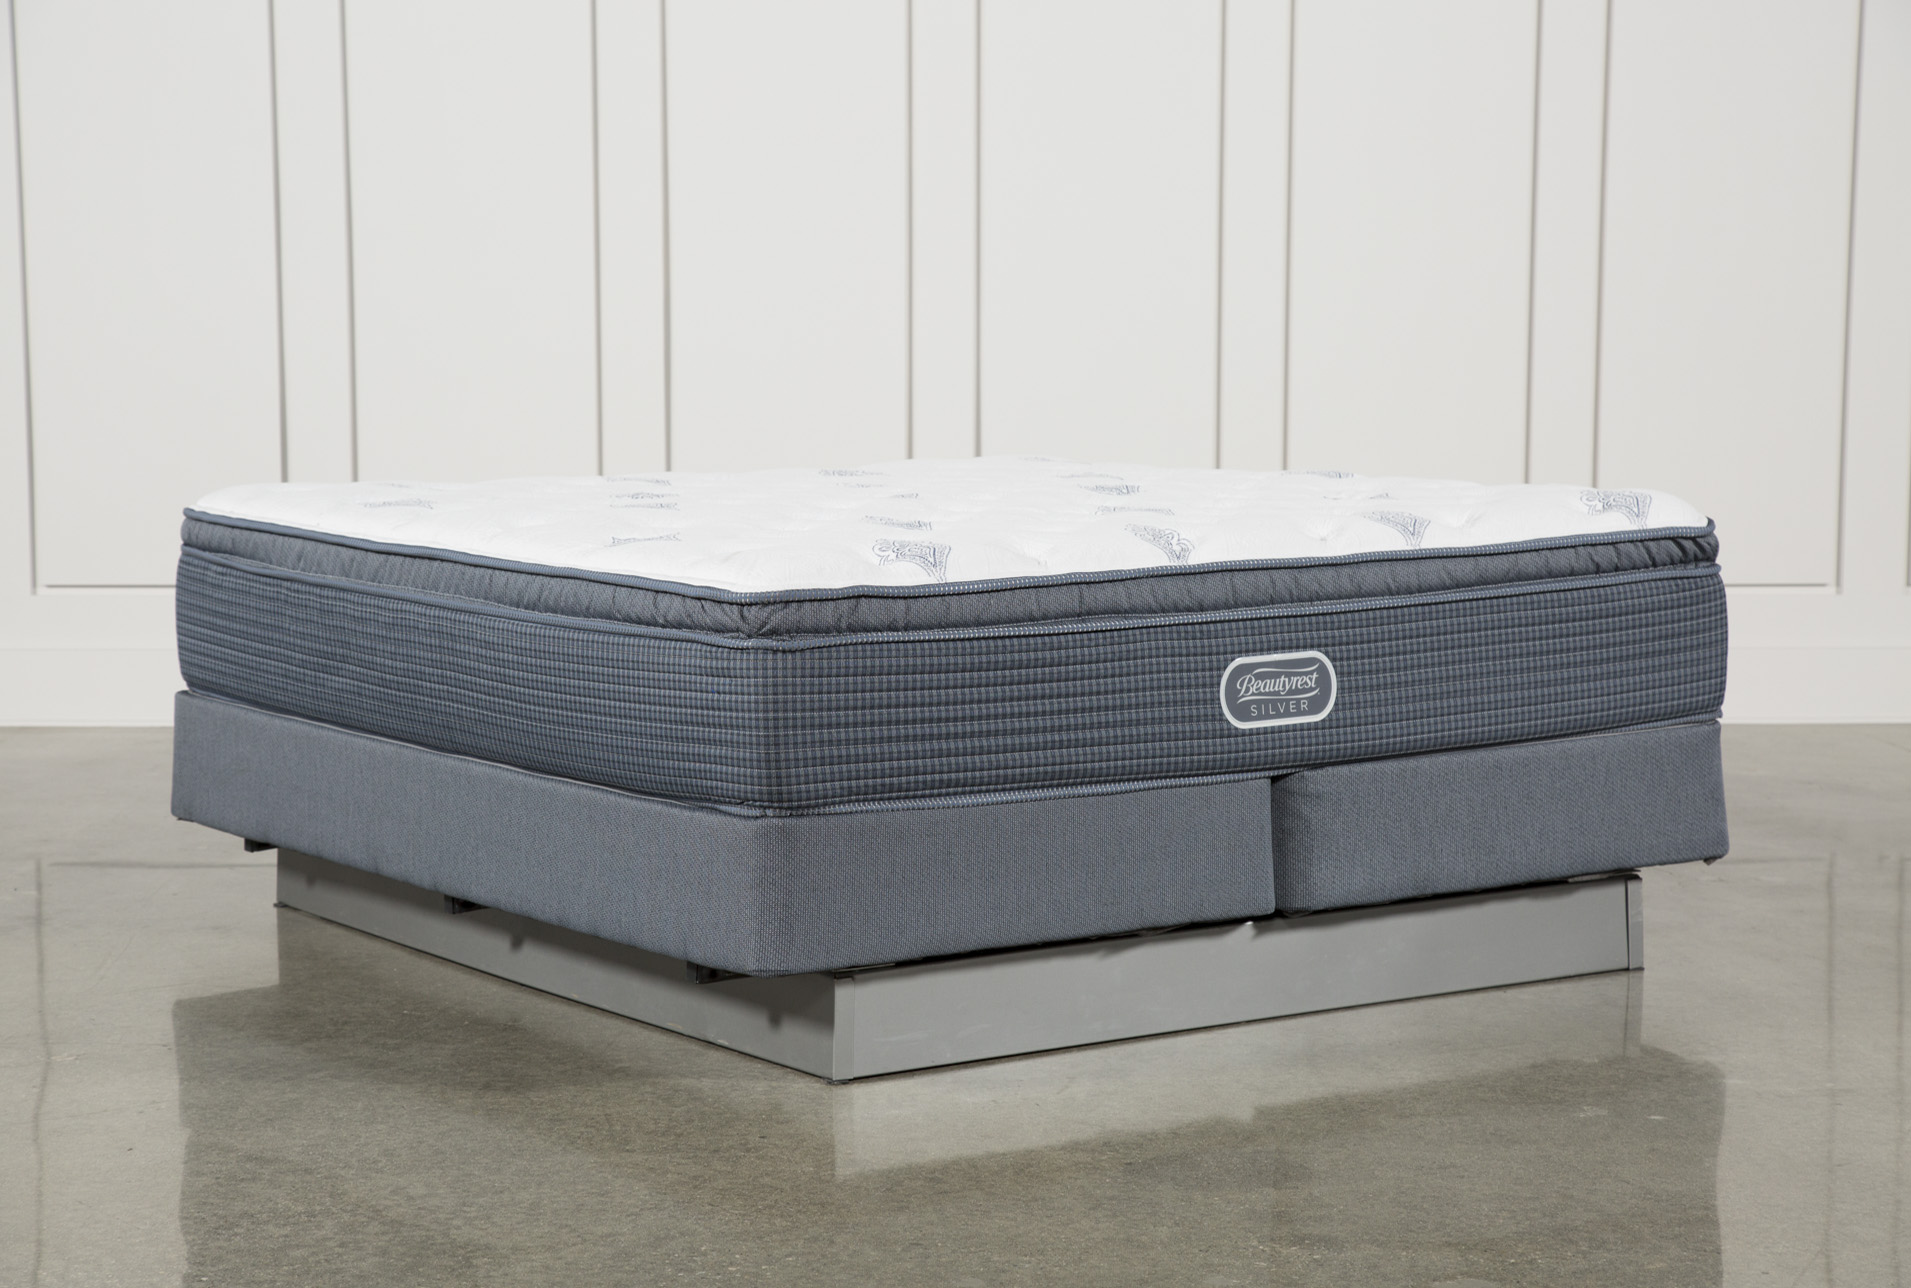 Palm Springs Plush Pillow Top Eastern King Mattress W/Foundation (Qty: 1)  Has Been Successfully Added To Your Cart.